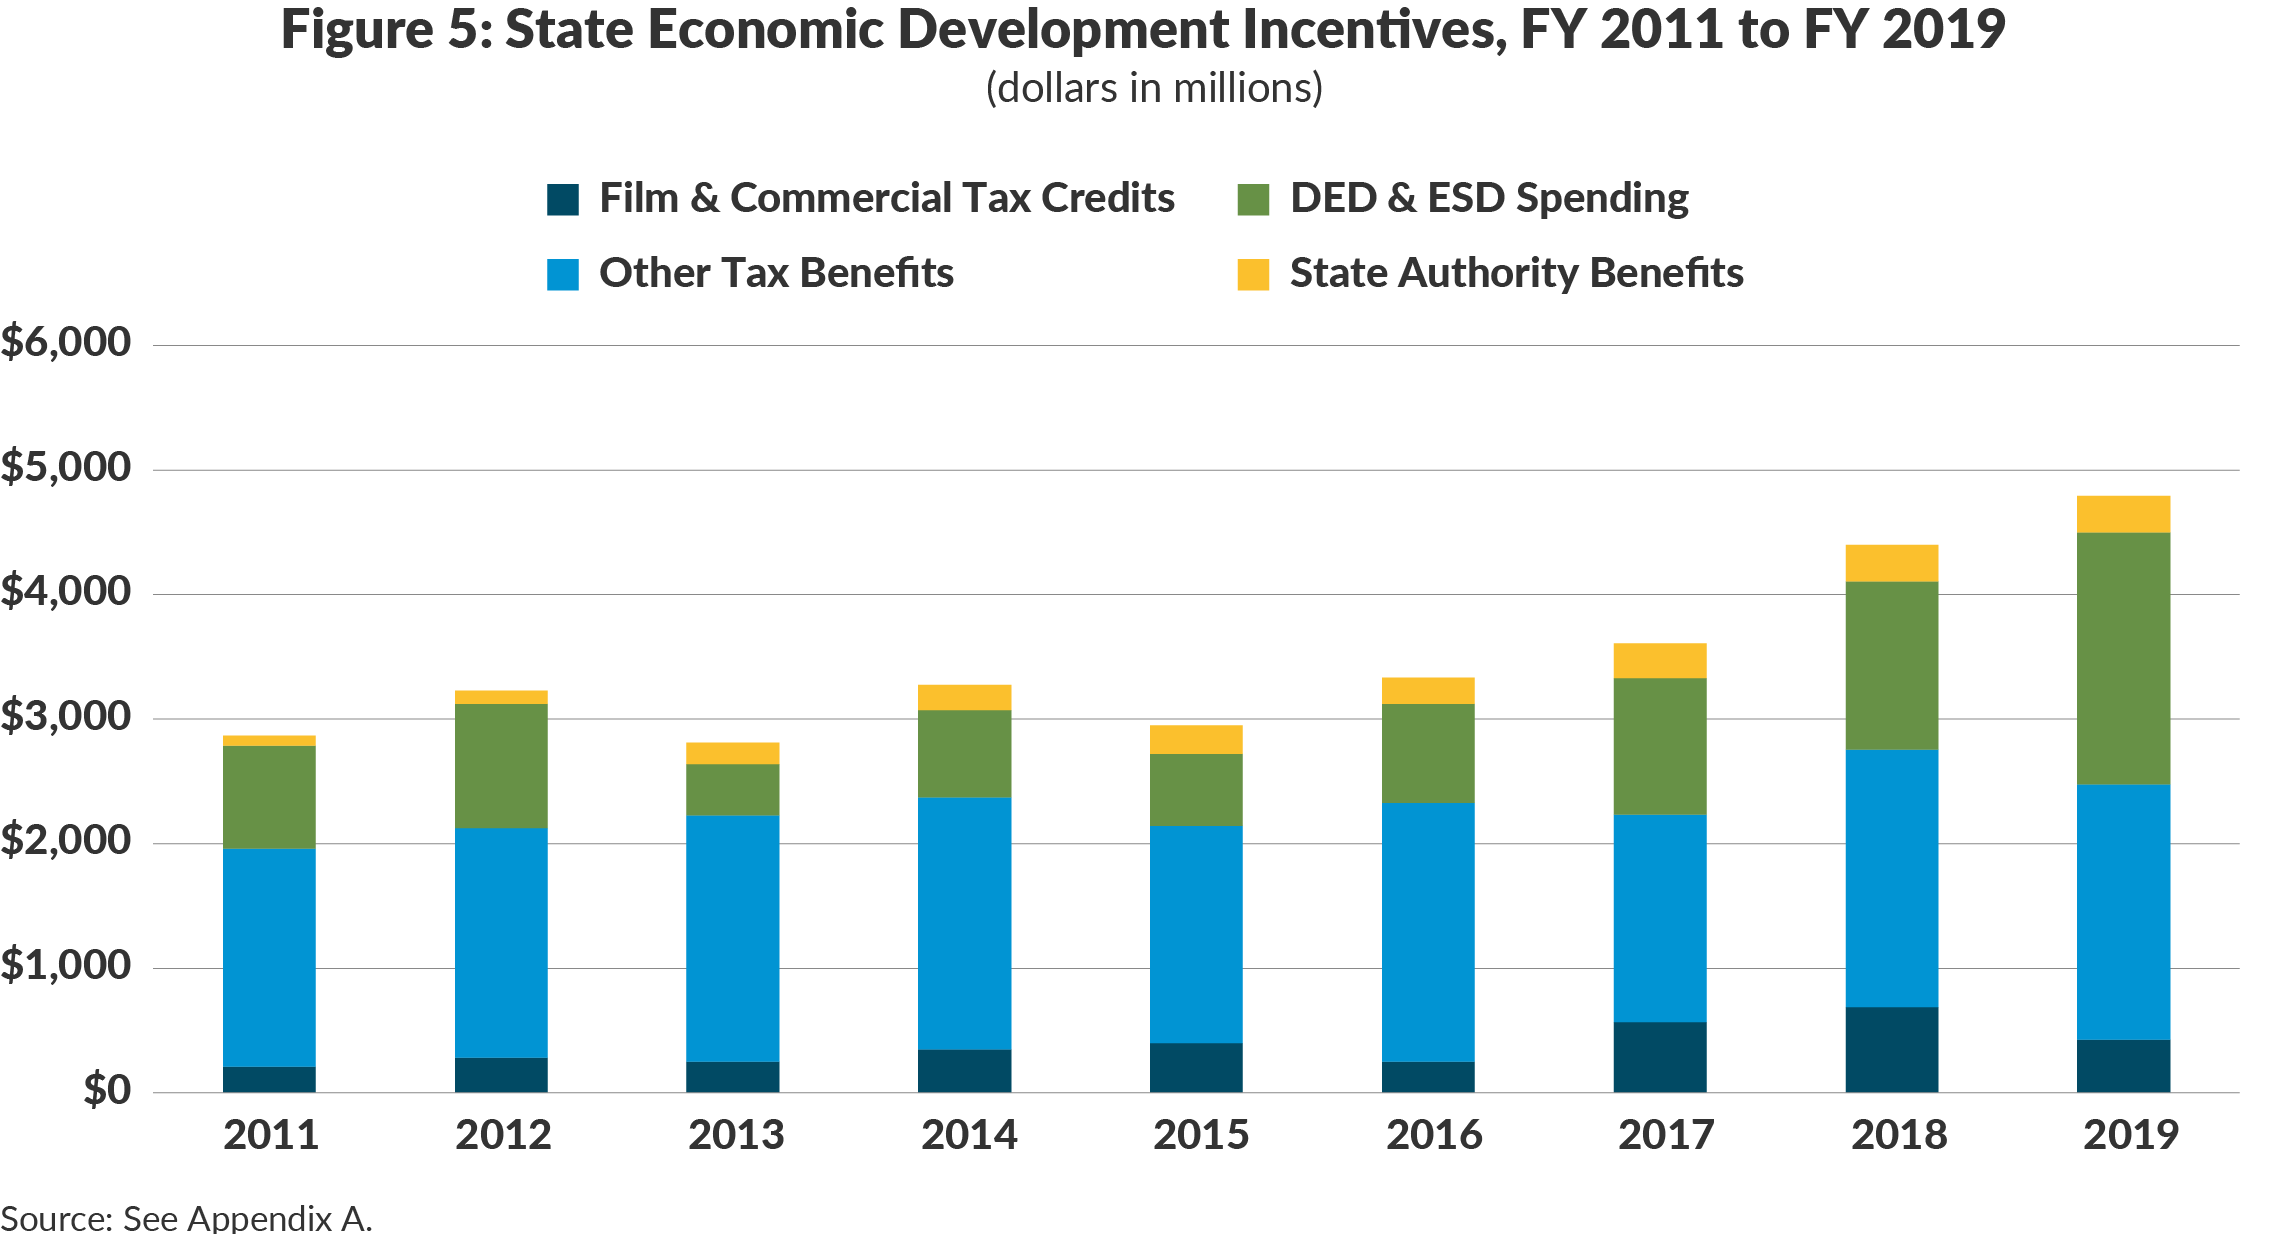 Figure 5: State Economic Development Incentives, FY 2011 to FY 2019